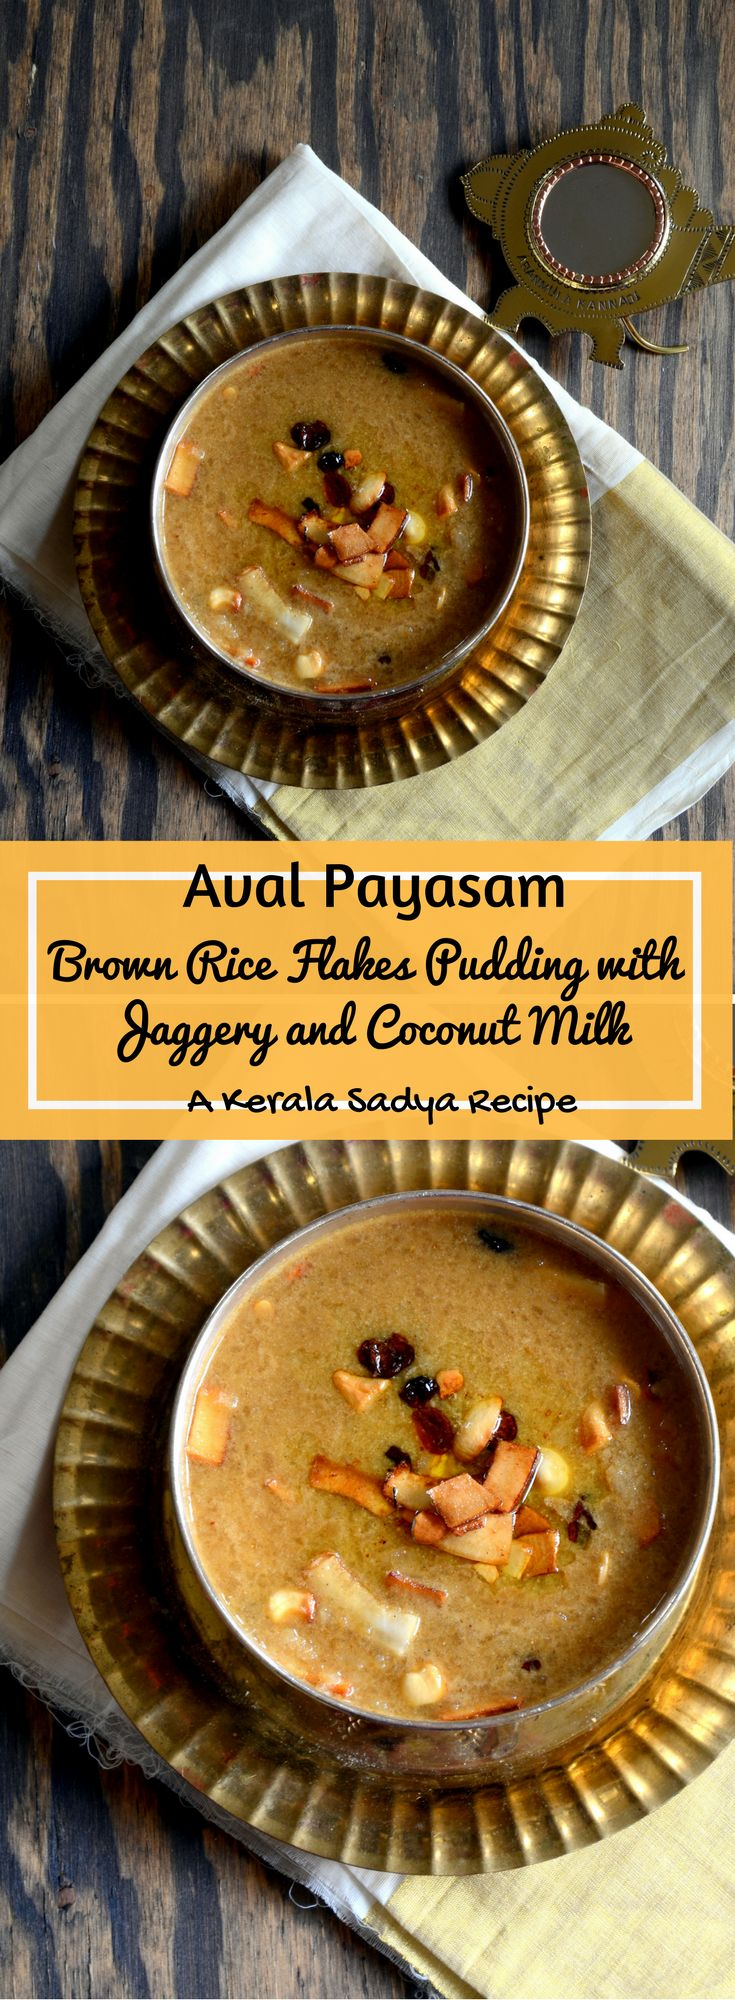 Aval Payasam - Brown Rice Flakes Pudding with Jaggery and Coconut Milk - A…